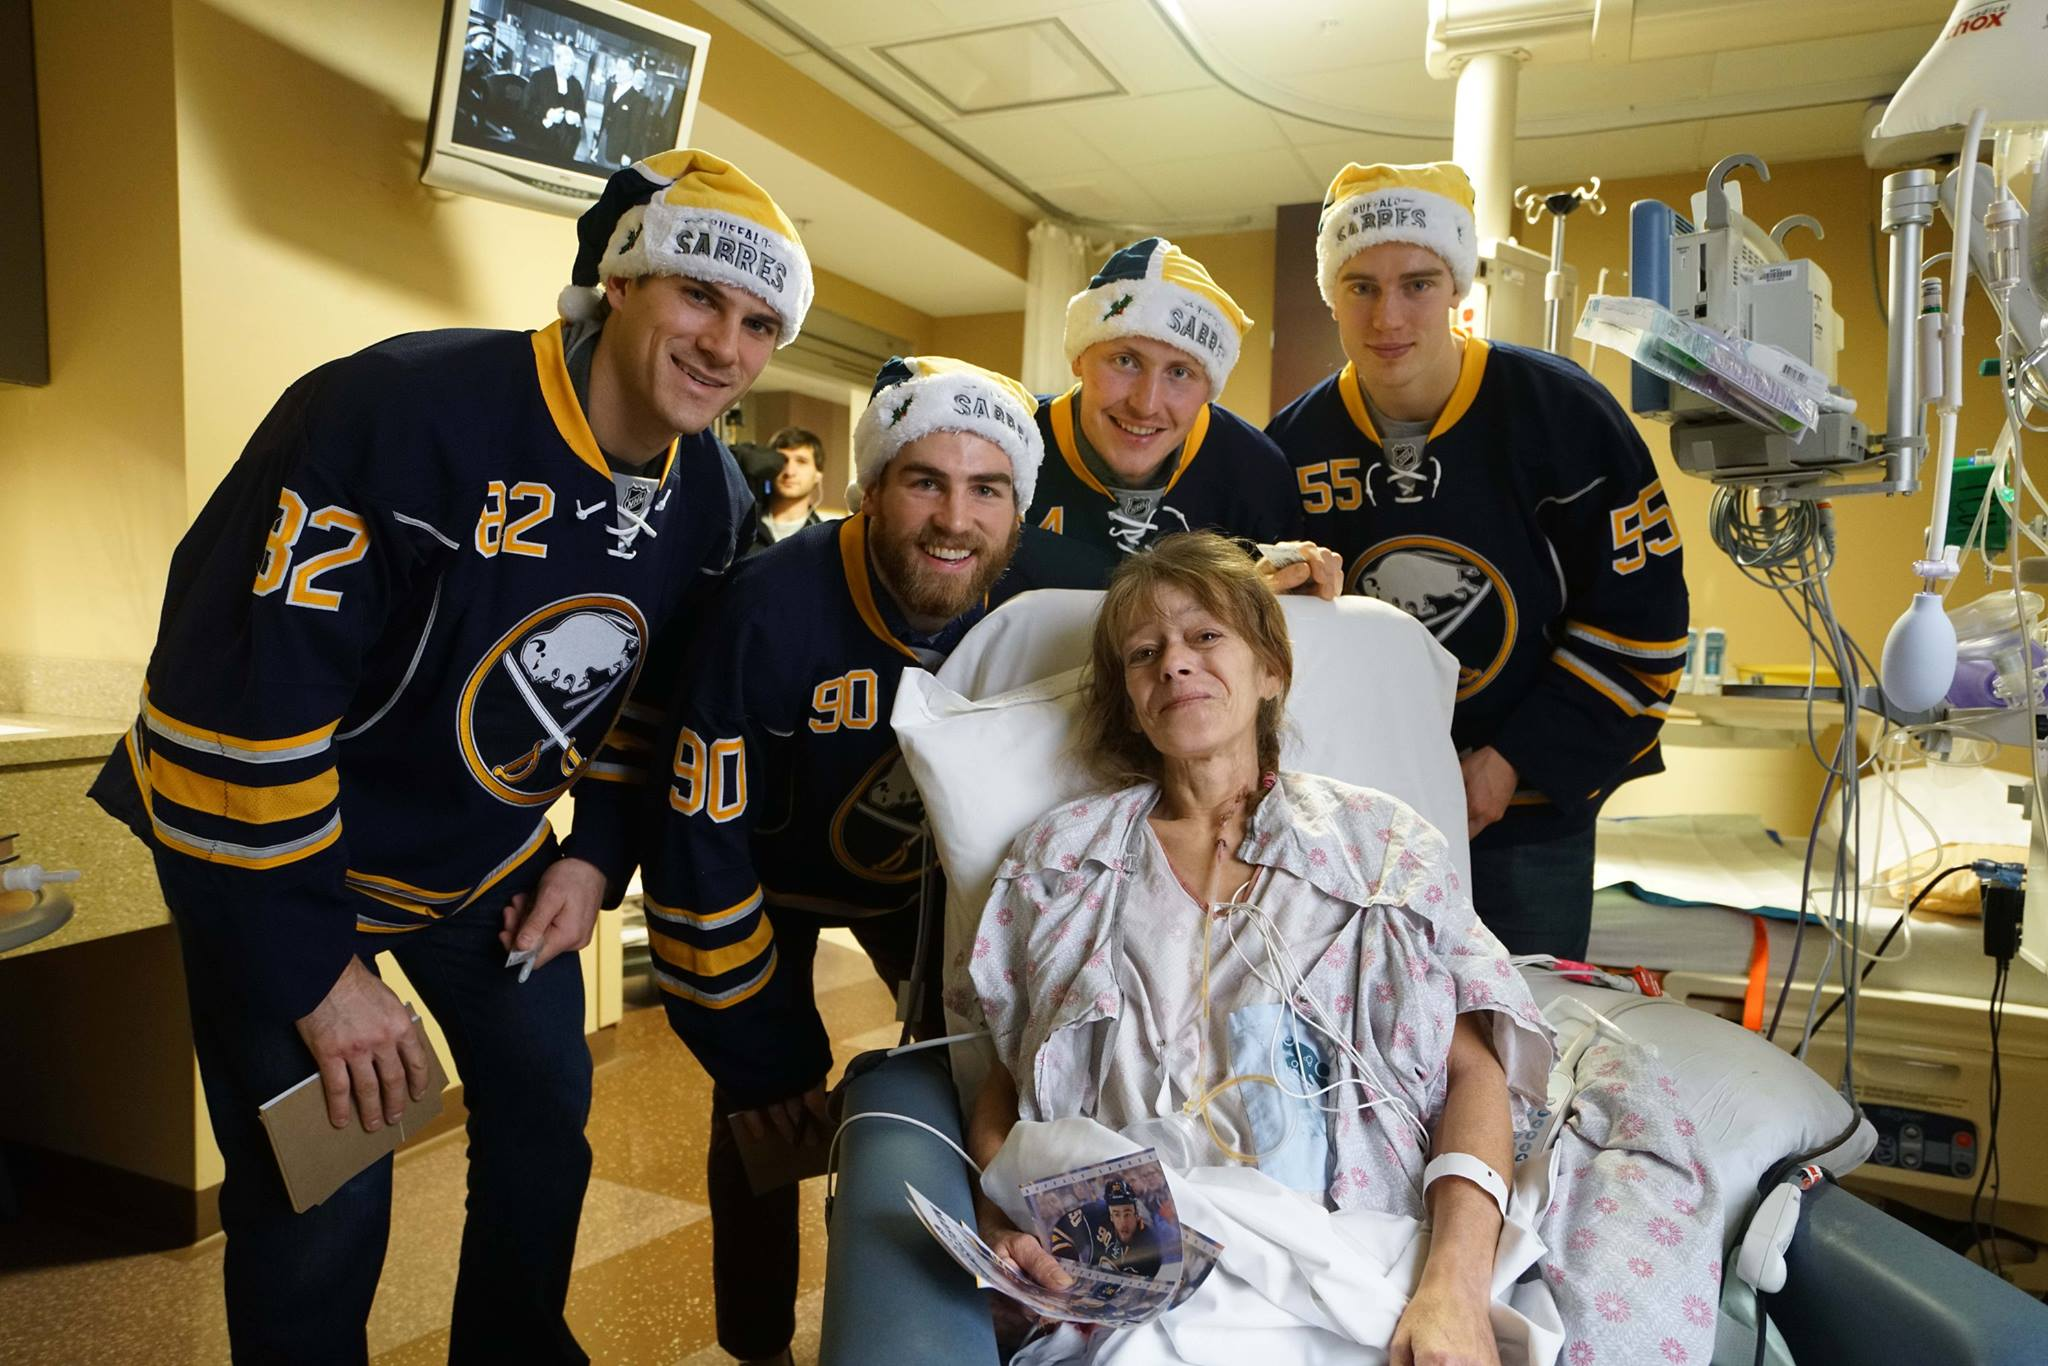 Marcus Foligno, Ryan O'Reilly, Nicolas Deslauriers and Rasmus Ristolainen meet with a patient during a visit to RPCI on December 16, 2015.